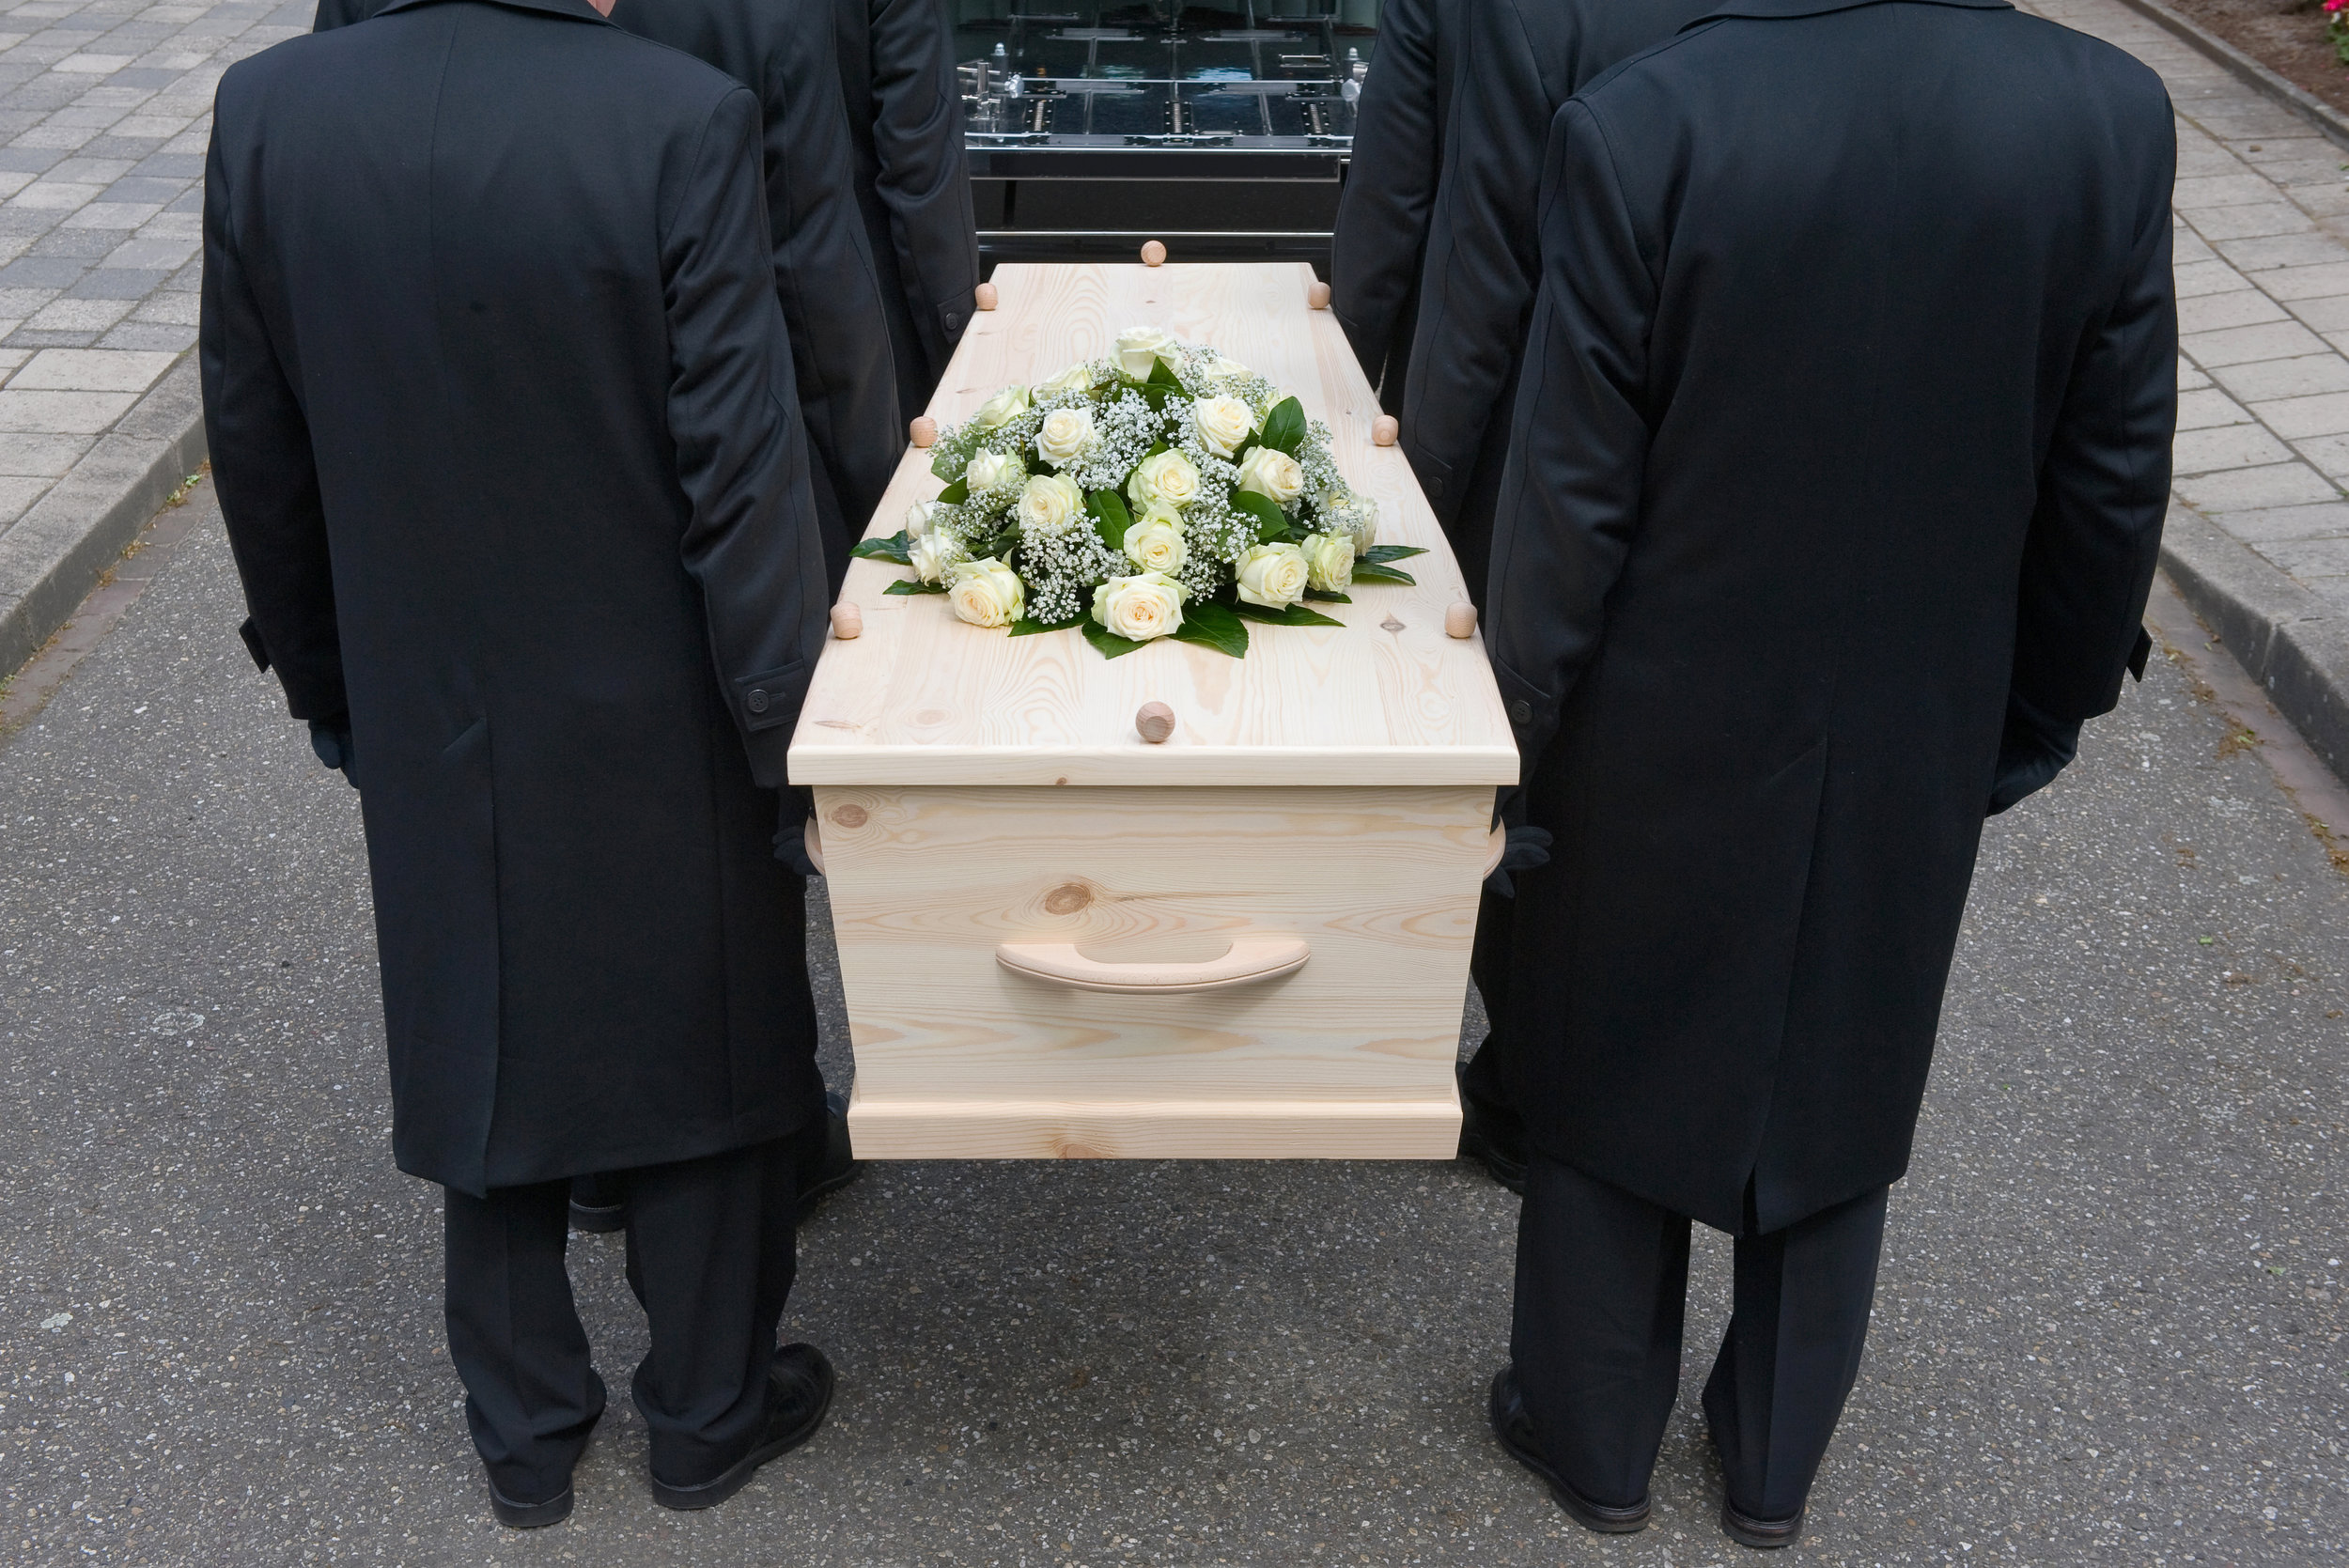 Law Offices Of Paul S. Foreman can help you with your wrongful death case